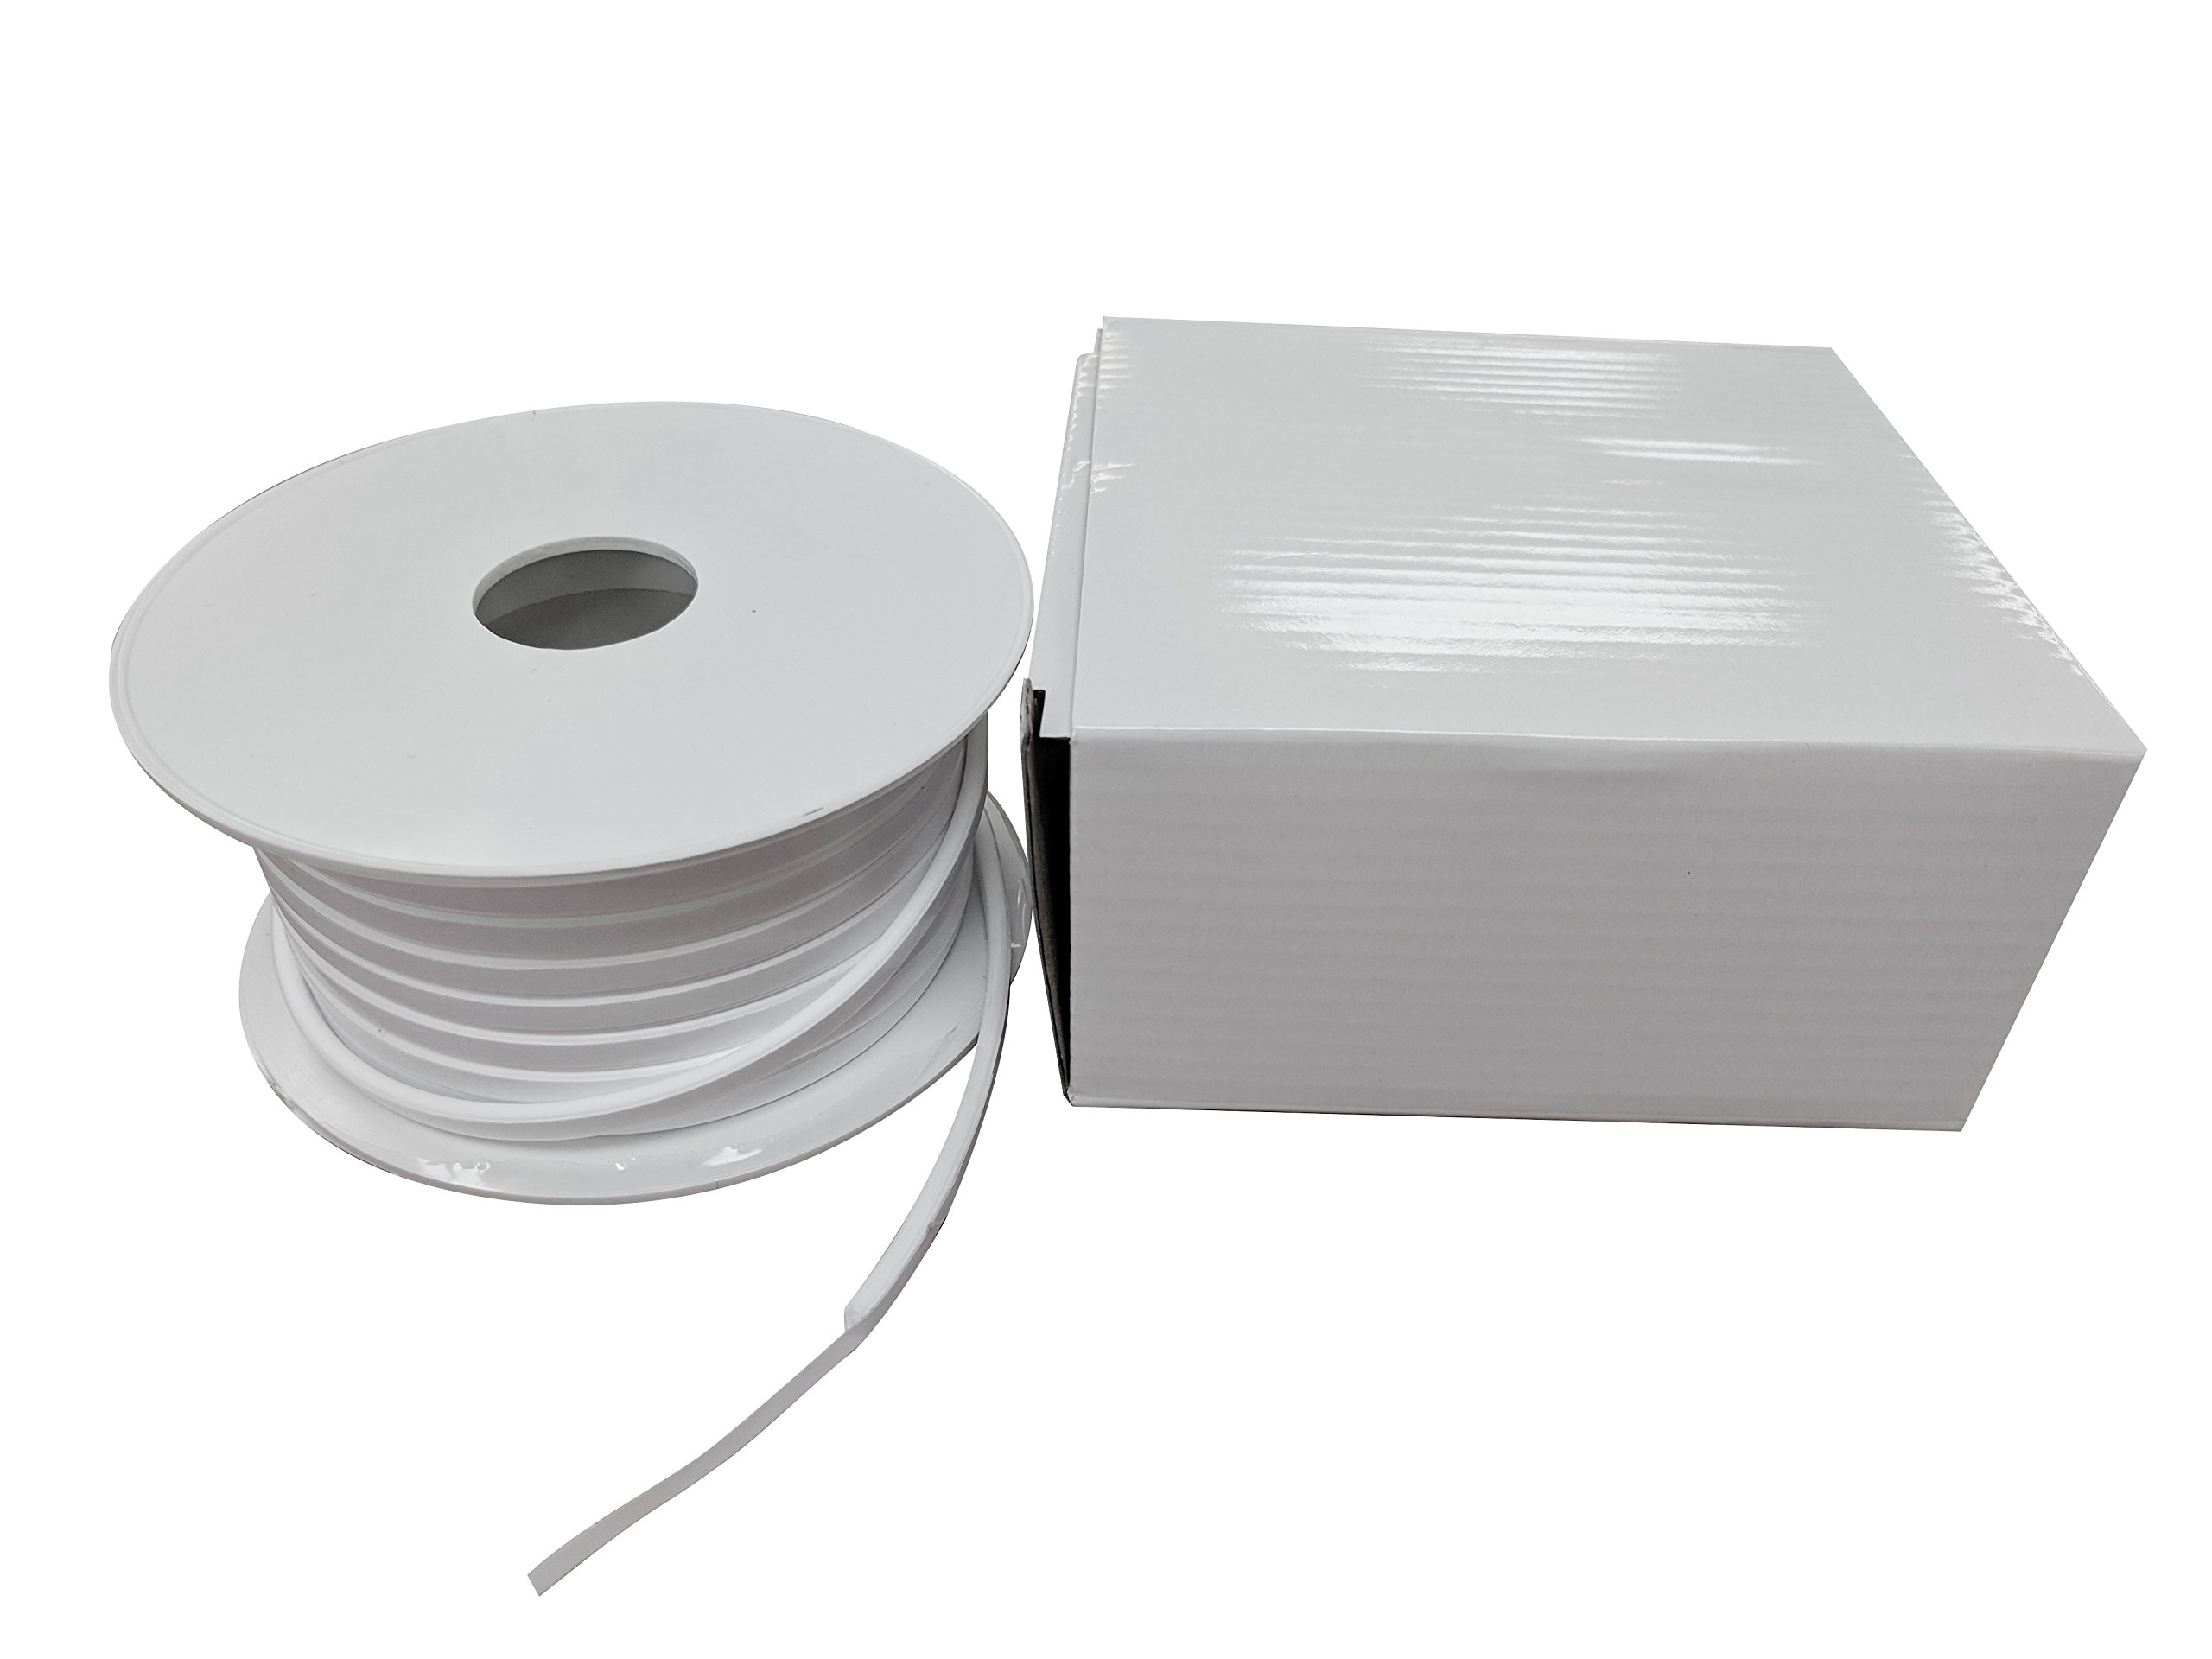 Sterling Seal and Supply (STCC)  1500.25050 1500/Teadit 24B White PTFE Joint Sealant for Applications in Steel, Glass Lined, PVC and Fiber Glass Pipe Flanges, Fume Ducts, Concrete Lids, Heat Exchangers, 1/4'' Wide, 50' by Sterling Seal & Supply, Inc. (STCC) (Image #8)